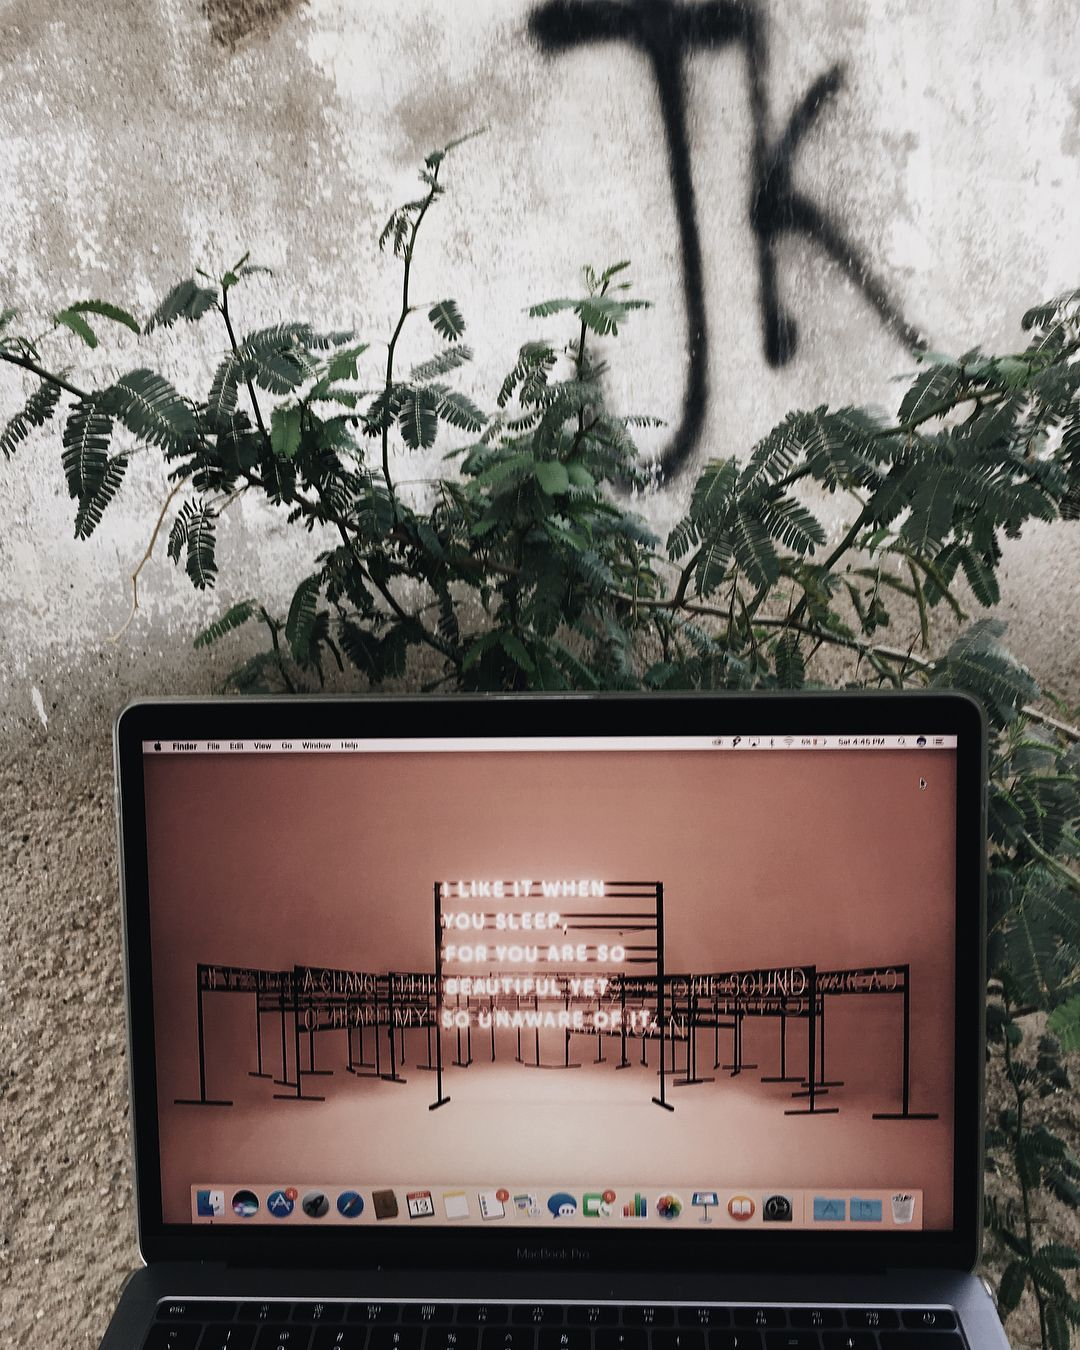 The 1975 Wallpaper Macbook Pro Indie Pale Grunge Hipsters Aesthetic Instagram Creative In 2020 The 1975 Wallpaper Macbook Air Wallpaper Macbook Wallpaper